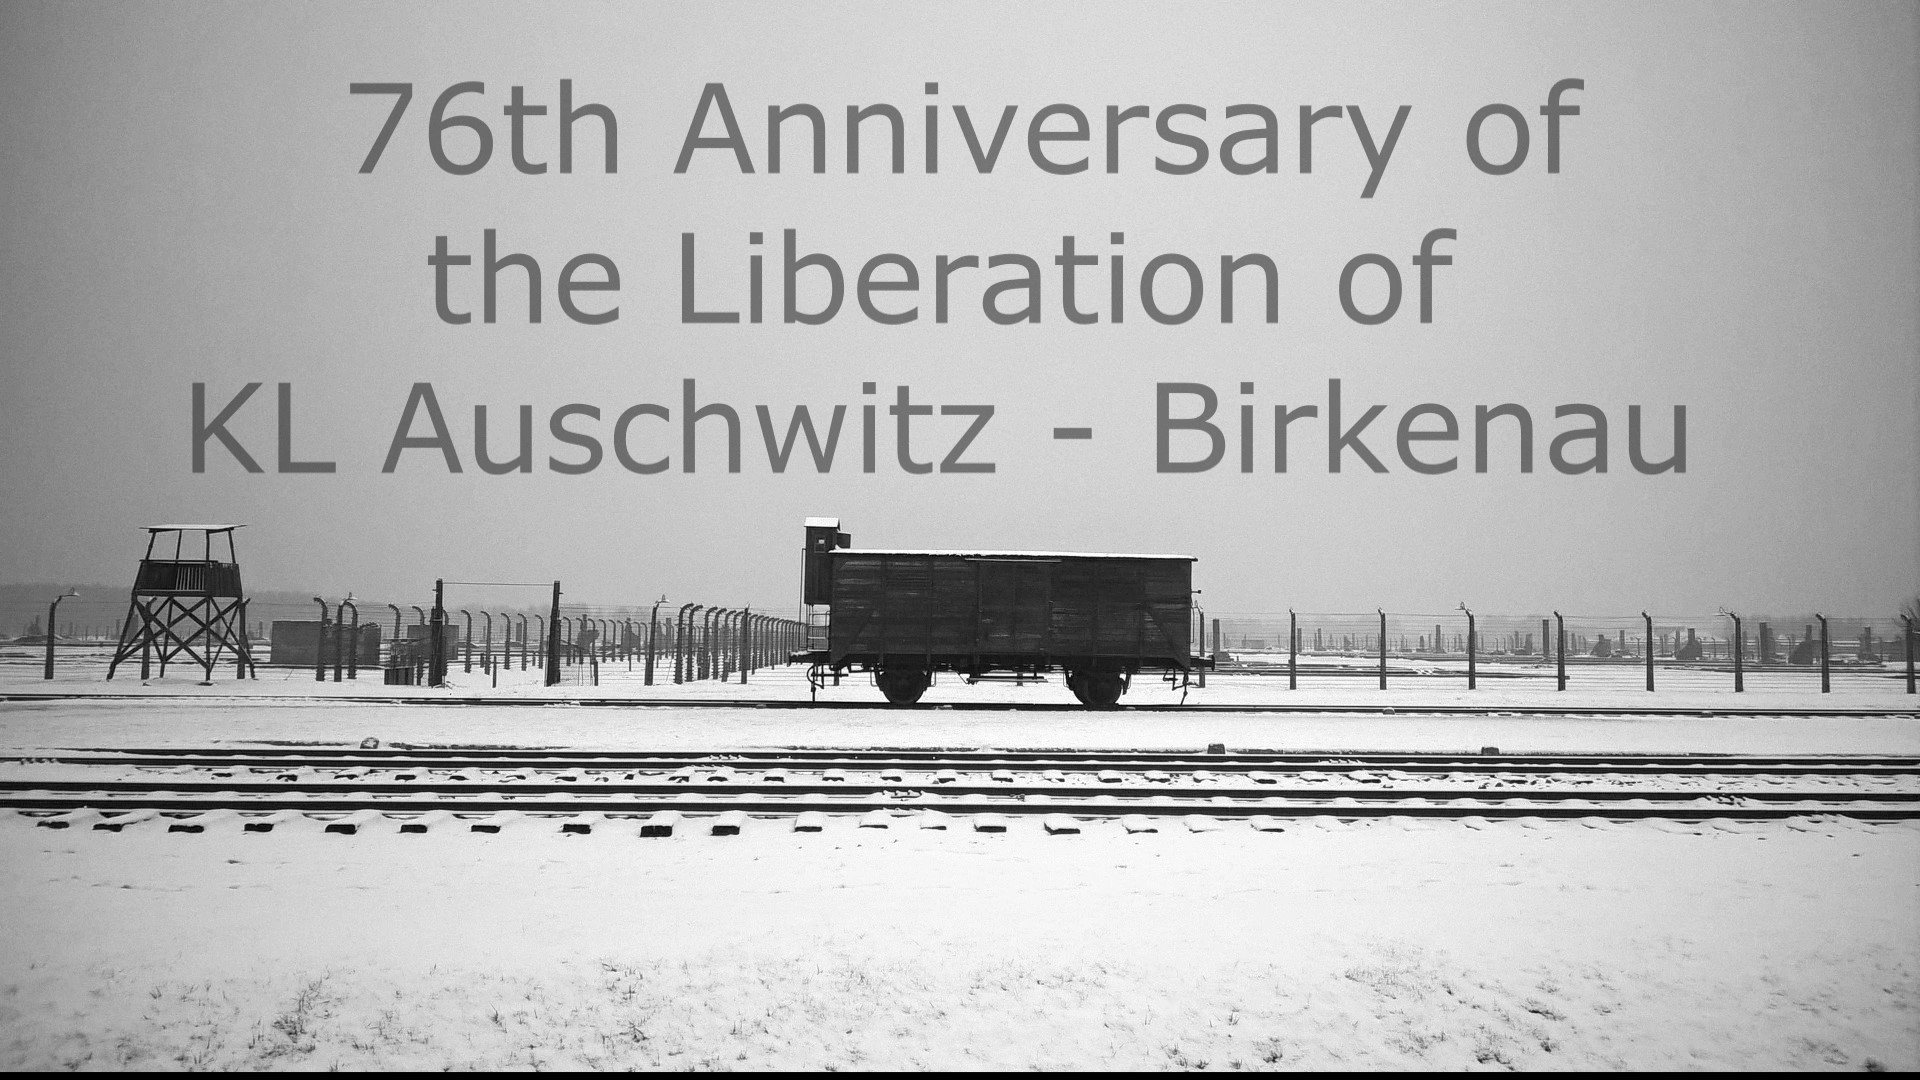 AUSCHWITZ LIBERATION WITHOUT FREEDOM - 76th Anniversary of Auschwitz Liberation.